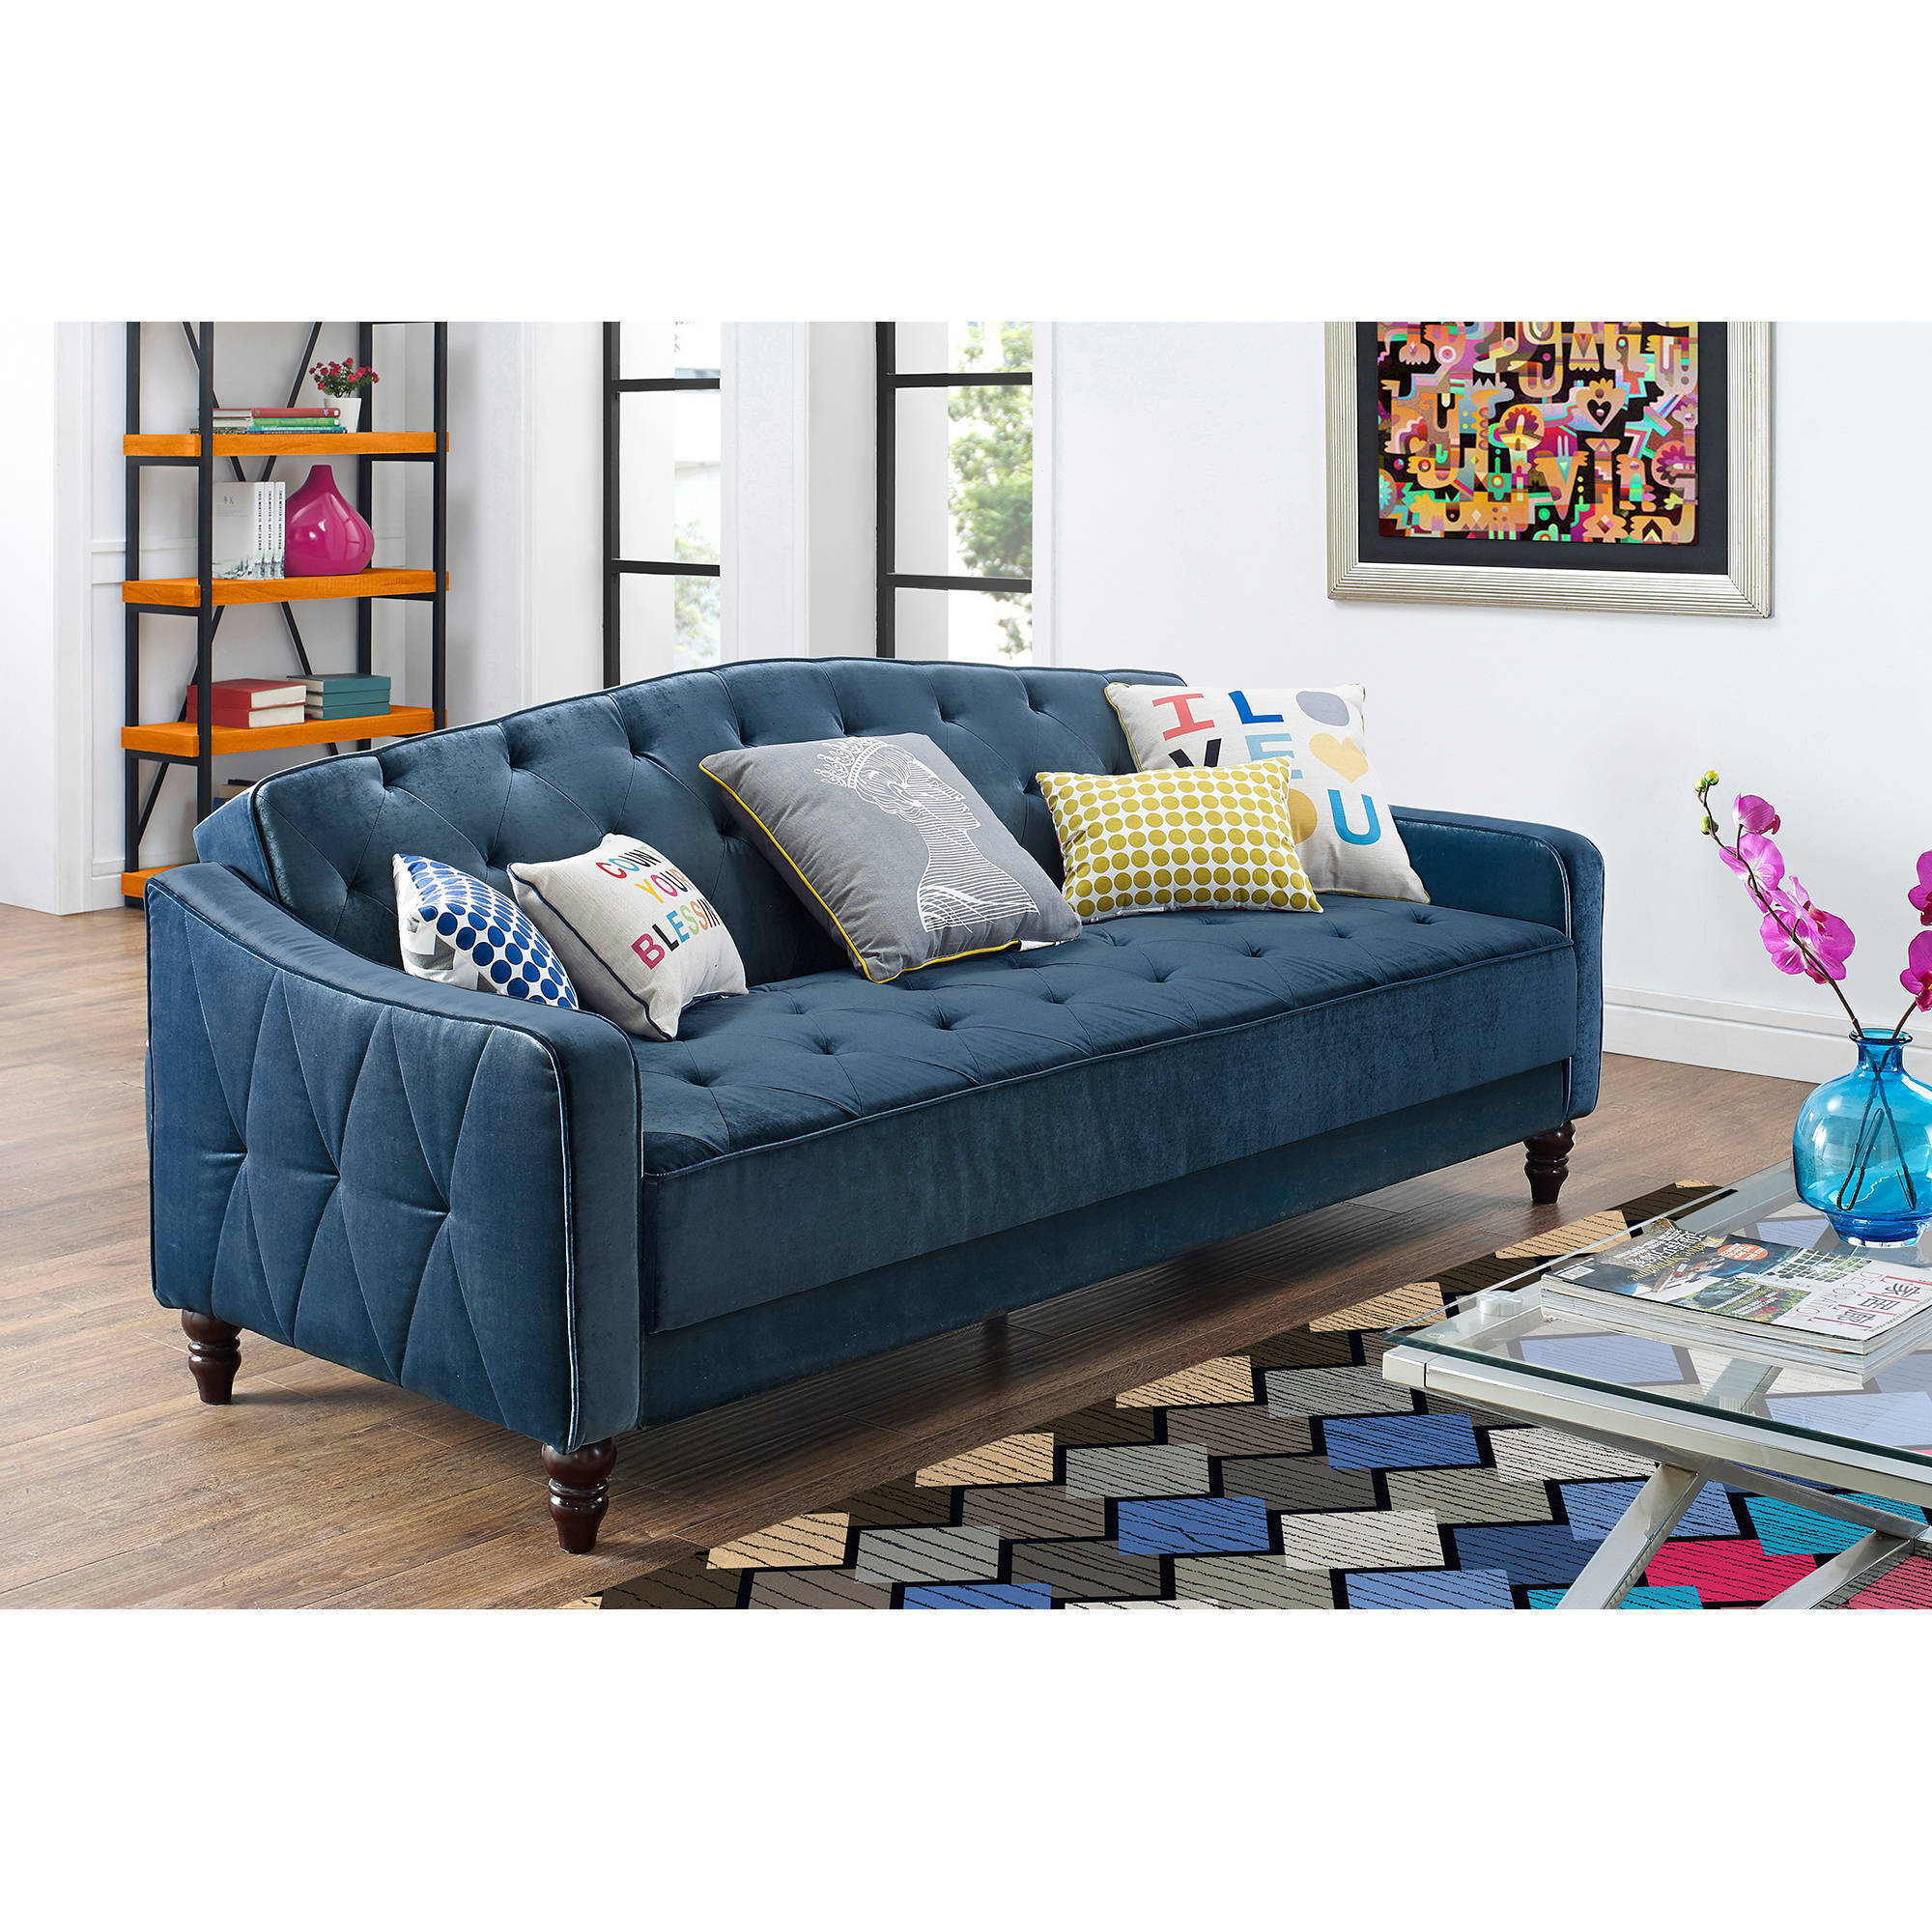 sleeper chaise queen w jarreau sale for blue sofa tepperman s futon beds